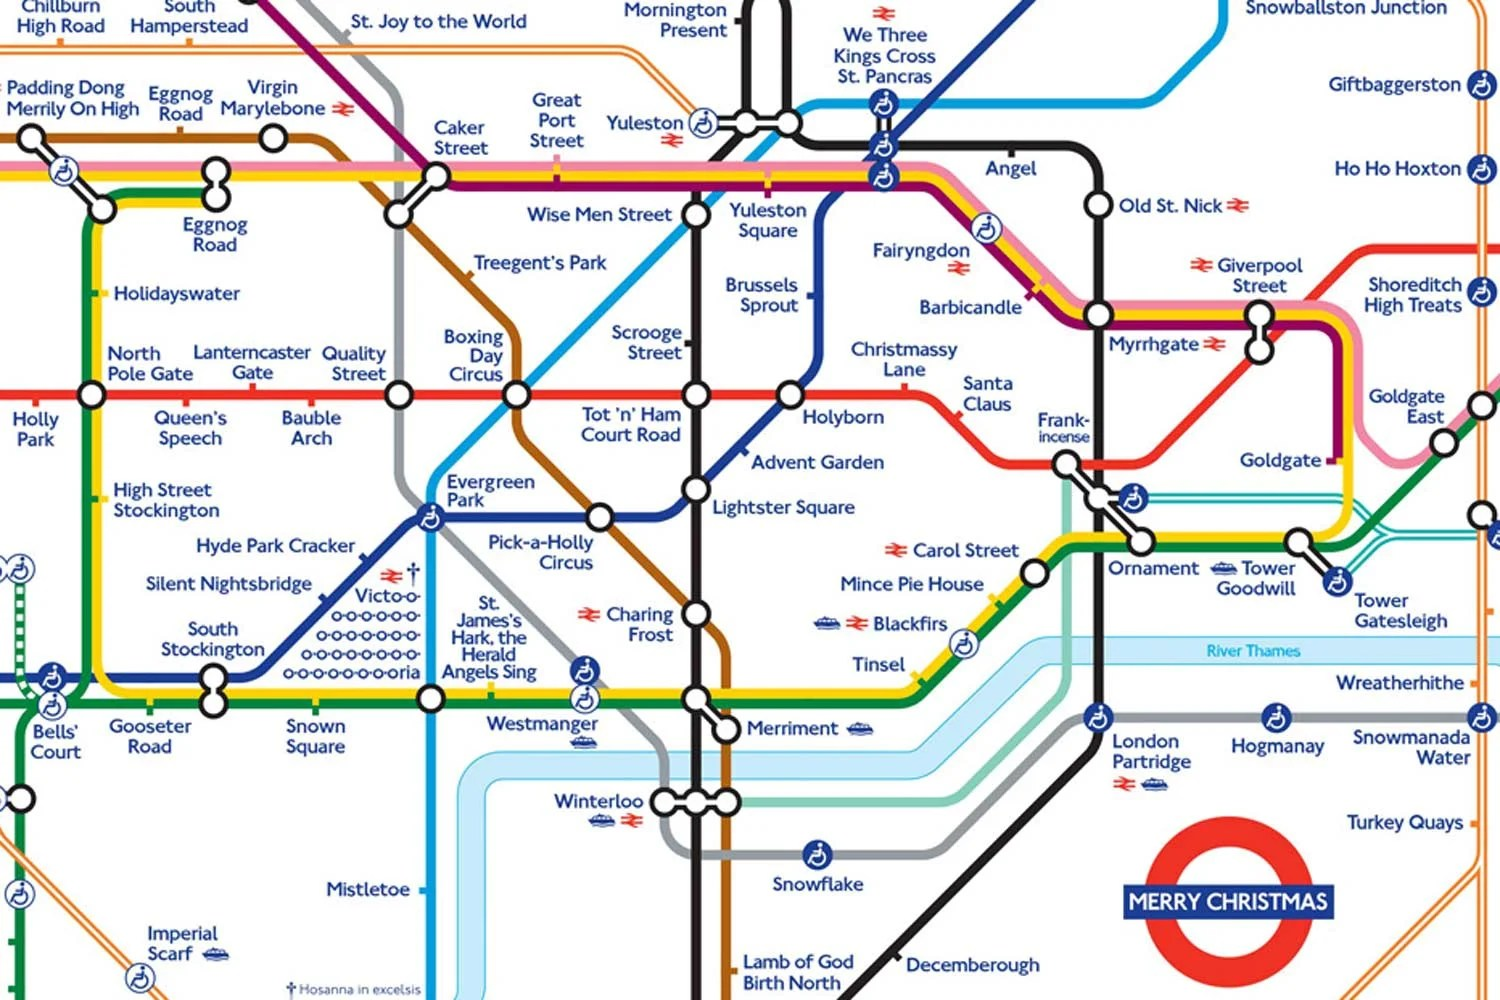 Ayesha Name 3d Wallpaper Free Download Londoner Creates Festive Tube Map To Help Spread Christmas